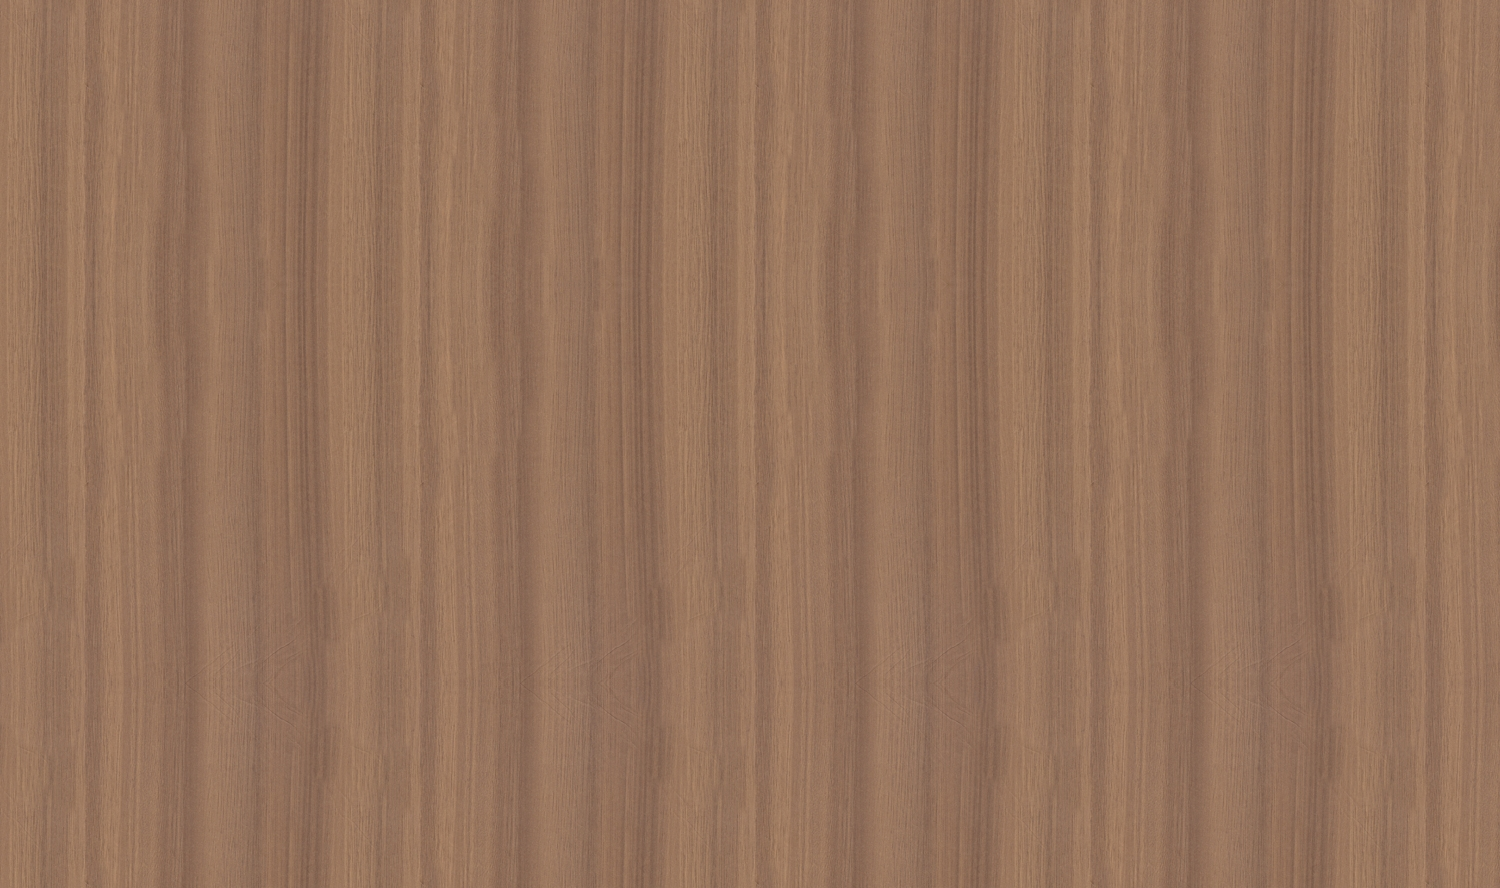 South Supreme For Wwalnut Laminate-Sundek International